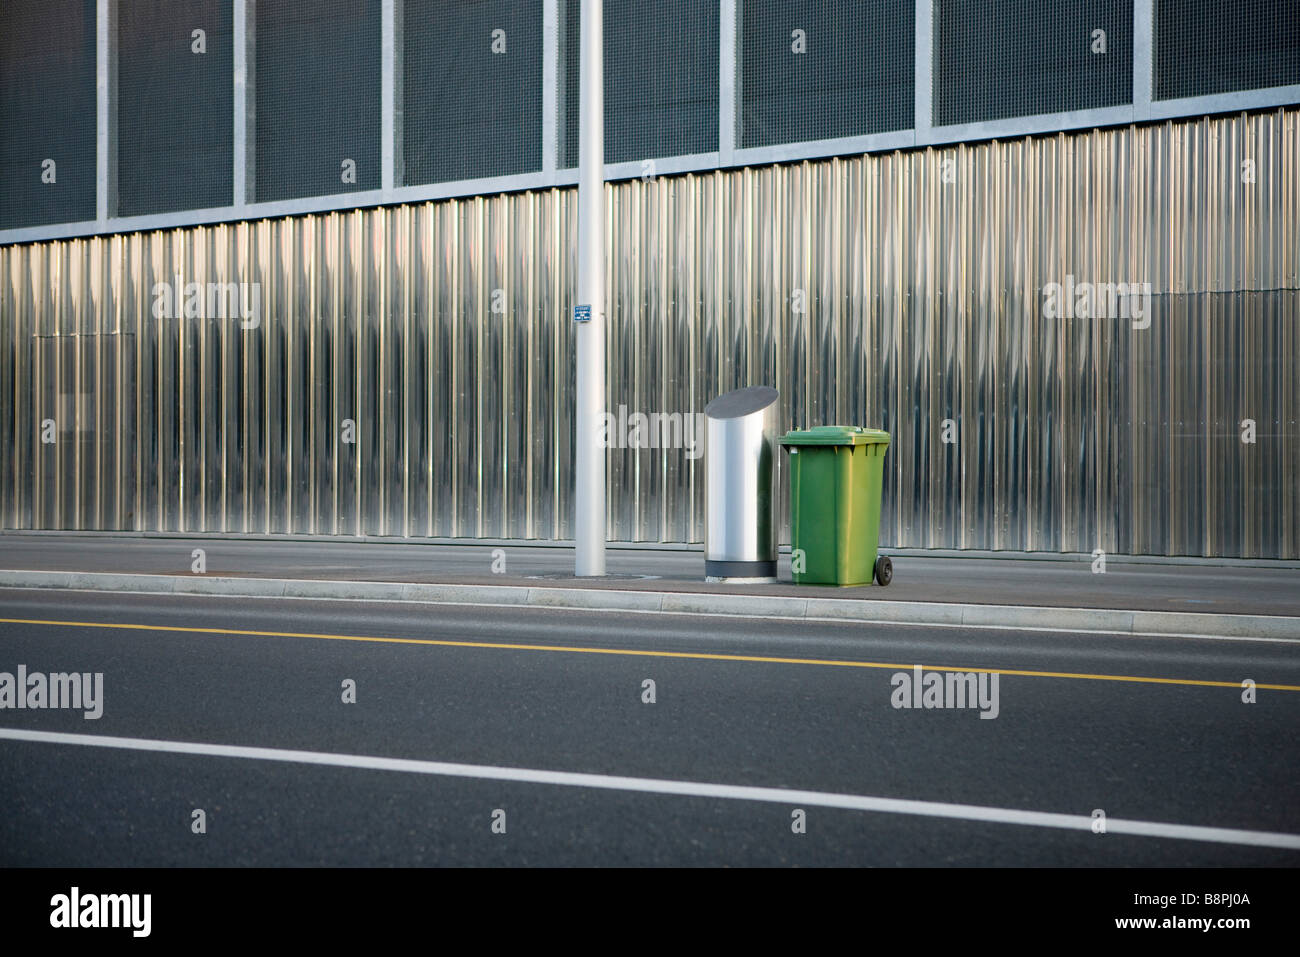 Trash cans on sidewalk - Stock Image